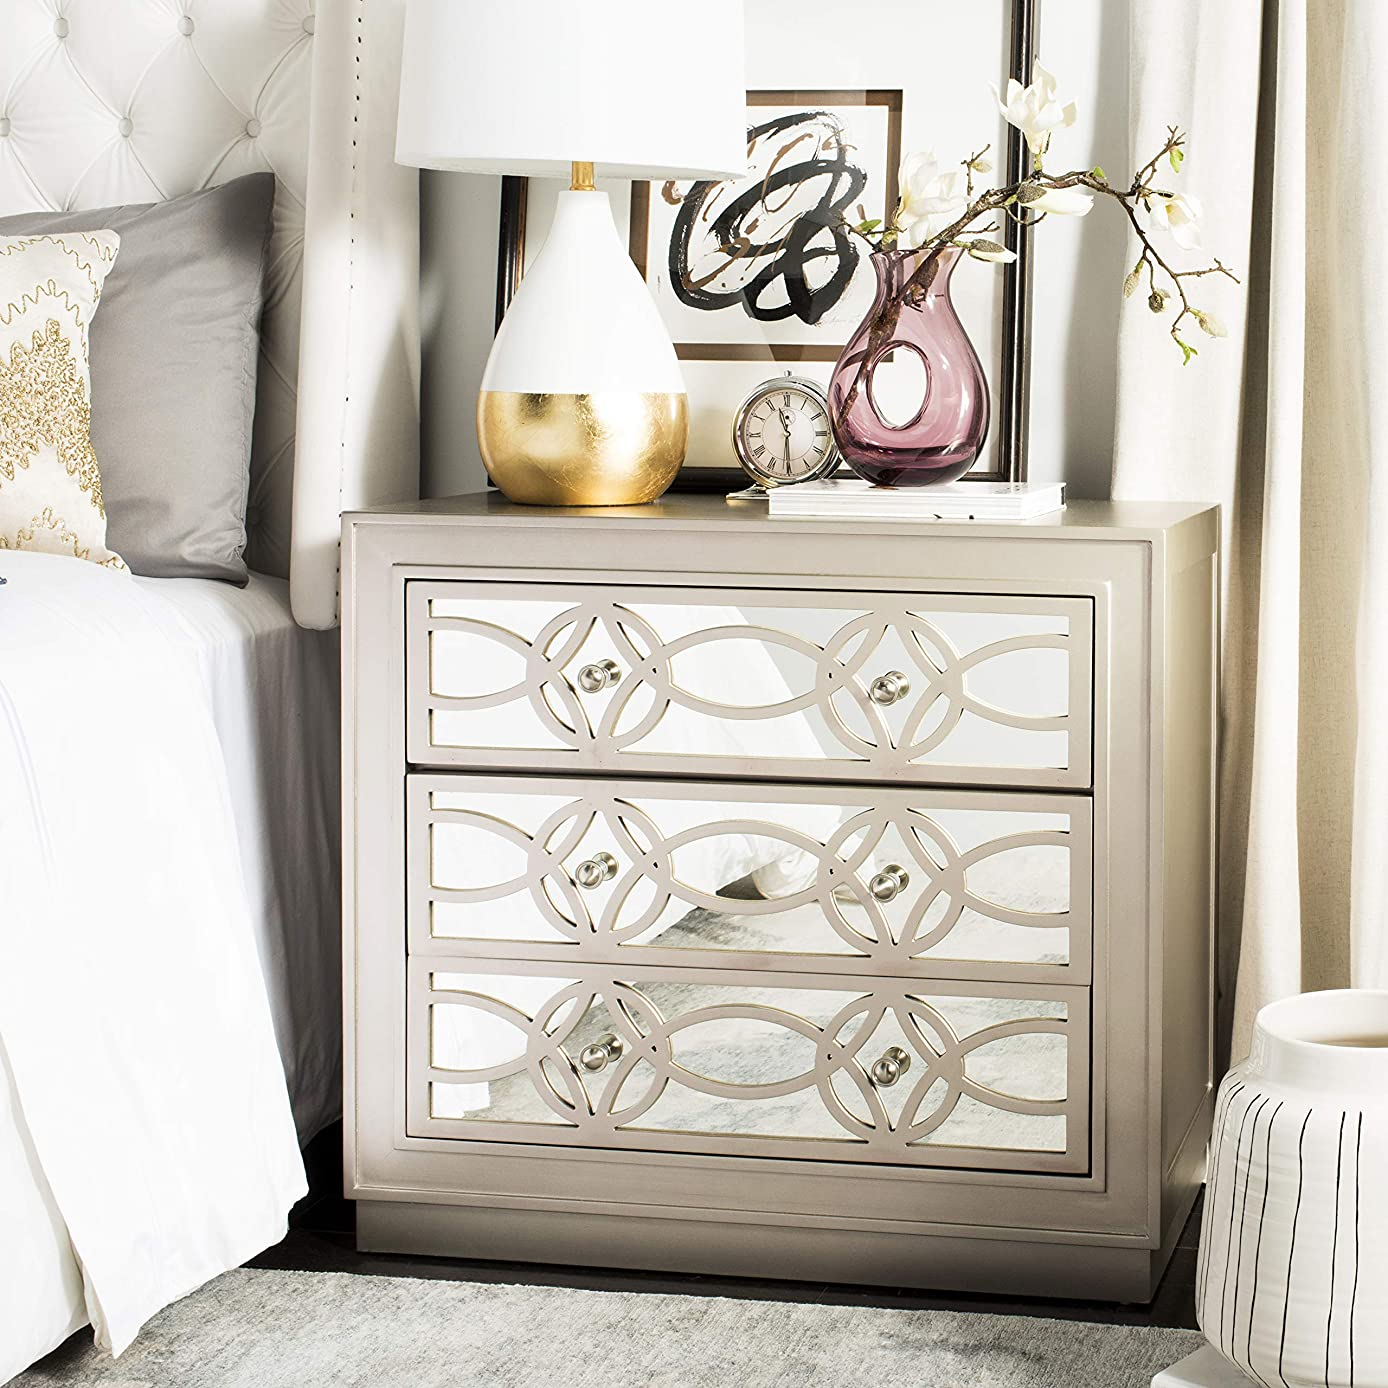 Safavieh CHS6400A Home Collection Catalina Champagne and Nickel 3 Chest of Drawers Mirror